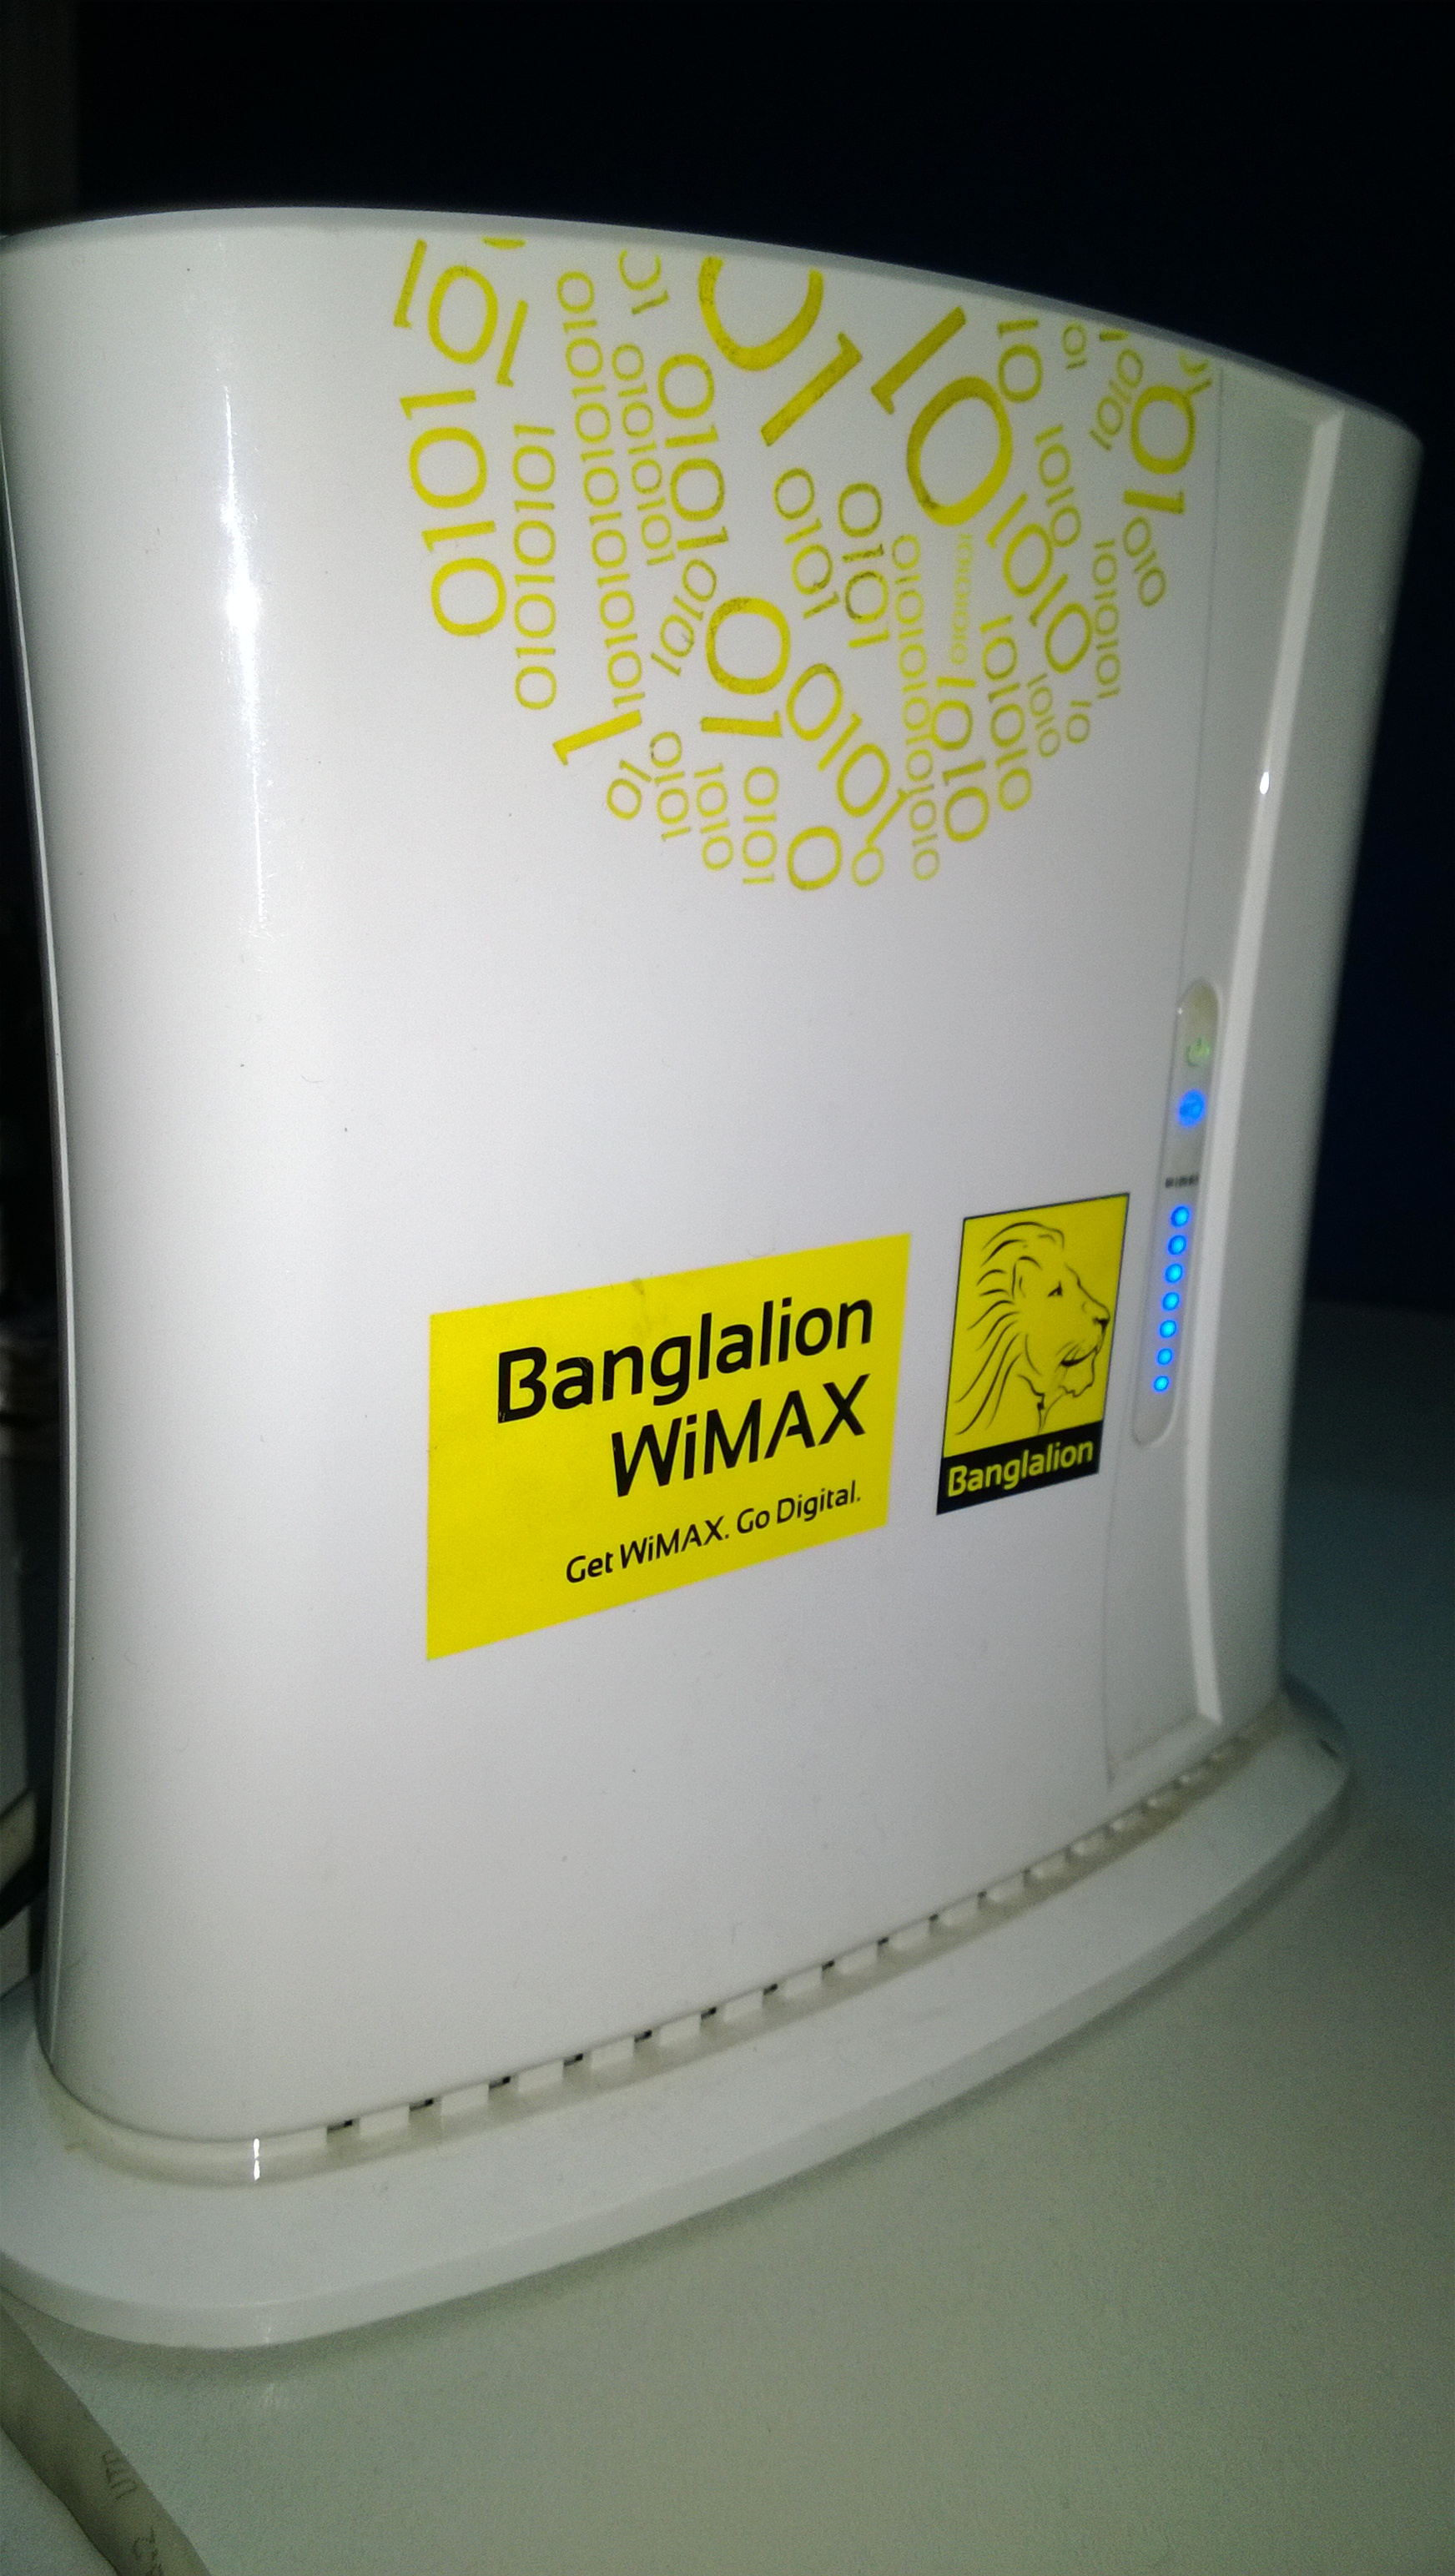 banglalion wi max technology in bangladesh Banglalion 4g wimax bangladesh banglalion is now using the latest 4g wimax (wireless interoperability for microwave access) technology allowing you to get as fast as 2 mbps speed which enables you to enjoy high speed wireless mobile connectivity.